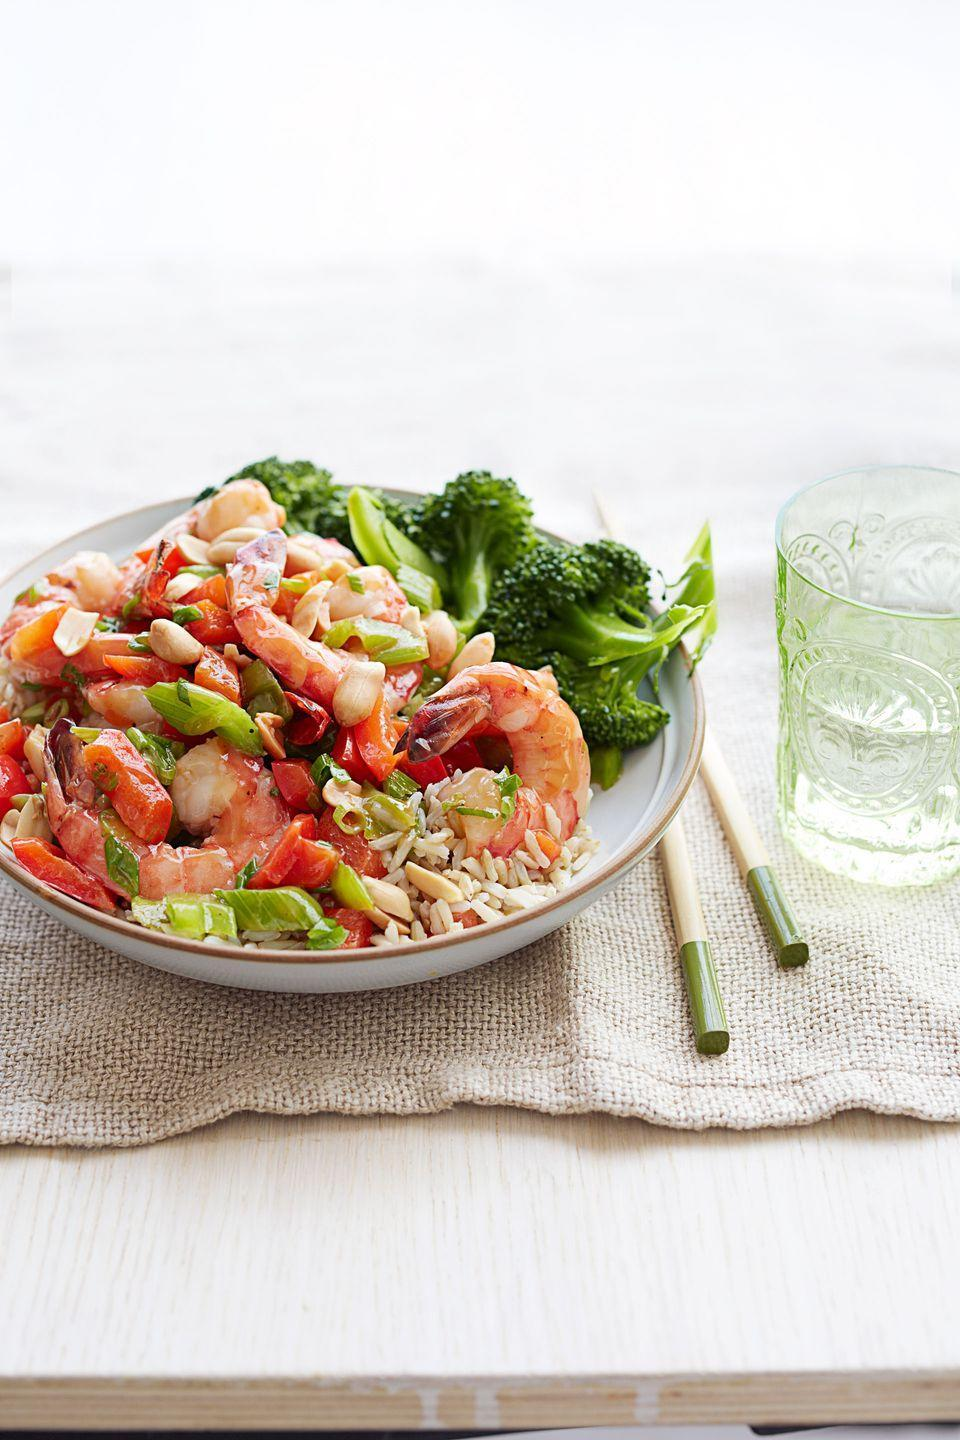 """<p>Our version is packed with flavor, calcium, fiber and vitamin C!<br></p><p><em><a href=""""https://www.goodhousekeeping.com/food-recipes/a15598/kung-pao-shrimp-recipe-ghk0214/"""" rel=""""nofollow noopener"""" target=""""_blank"""" data-ylk=""""slk:Get the recipe for Kung Pao Shrimp »"""" class=""""link rapid-noclick-resp"""">Get the recipe for Kung Pao Shrimp »</a></em></p>"""